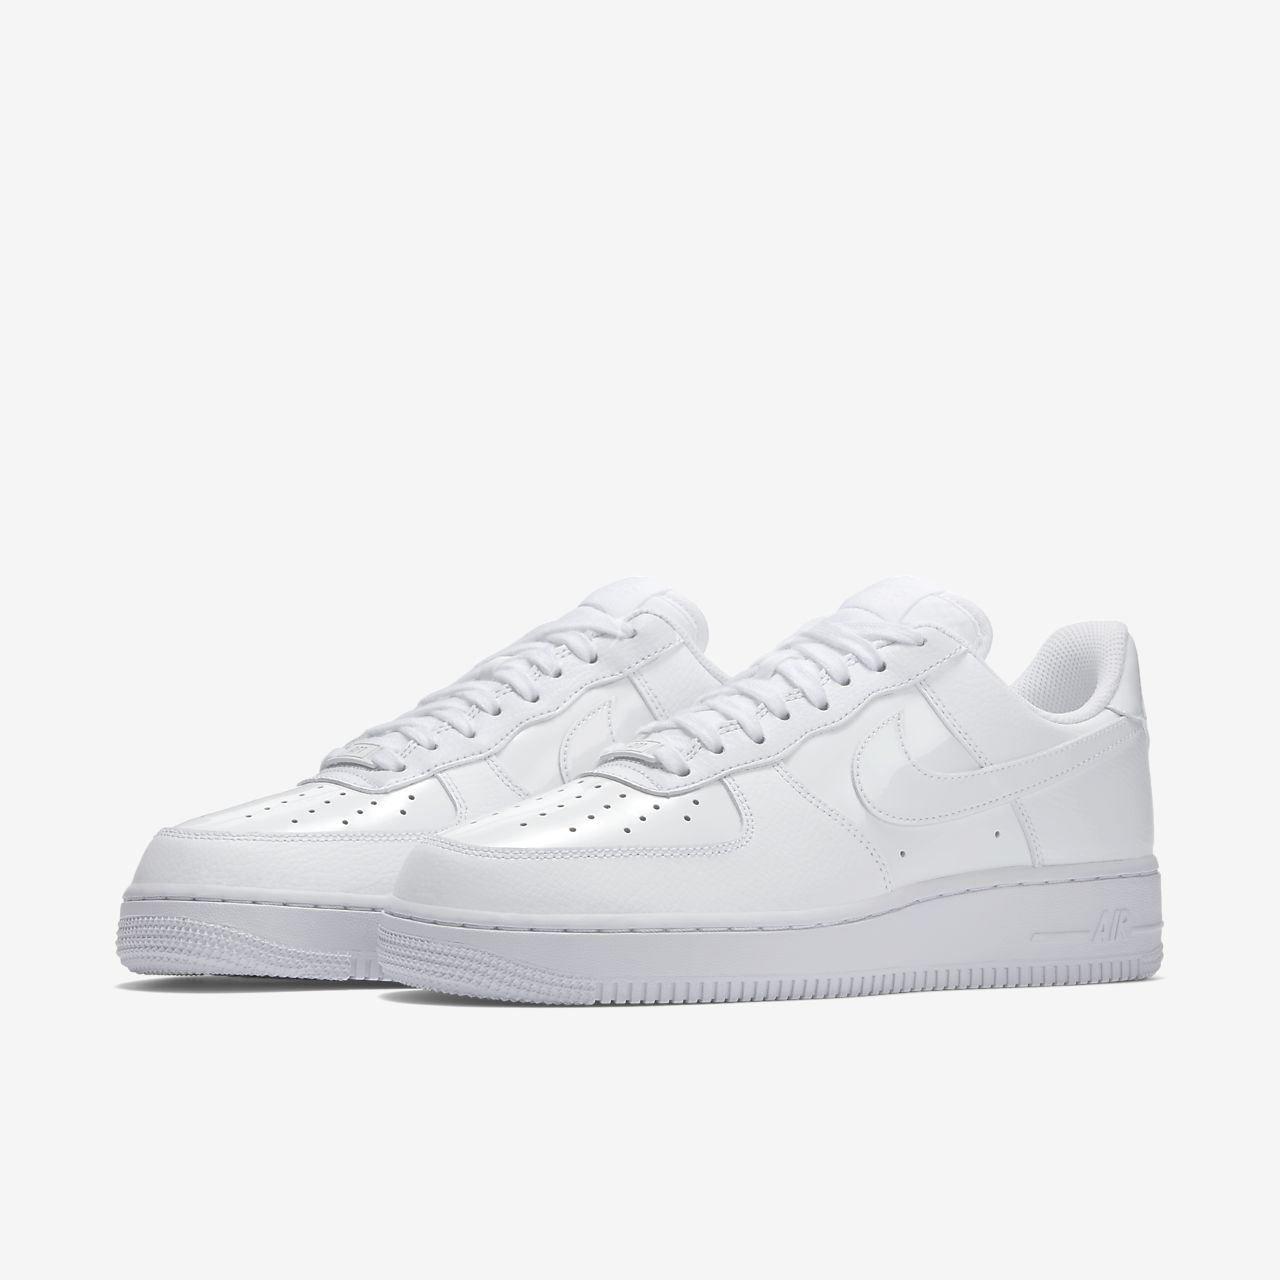 nike air force 1 mid 07 leather damenschuh 110 €1